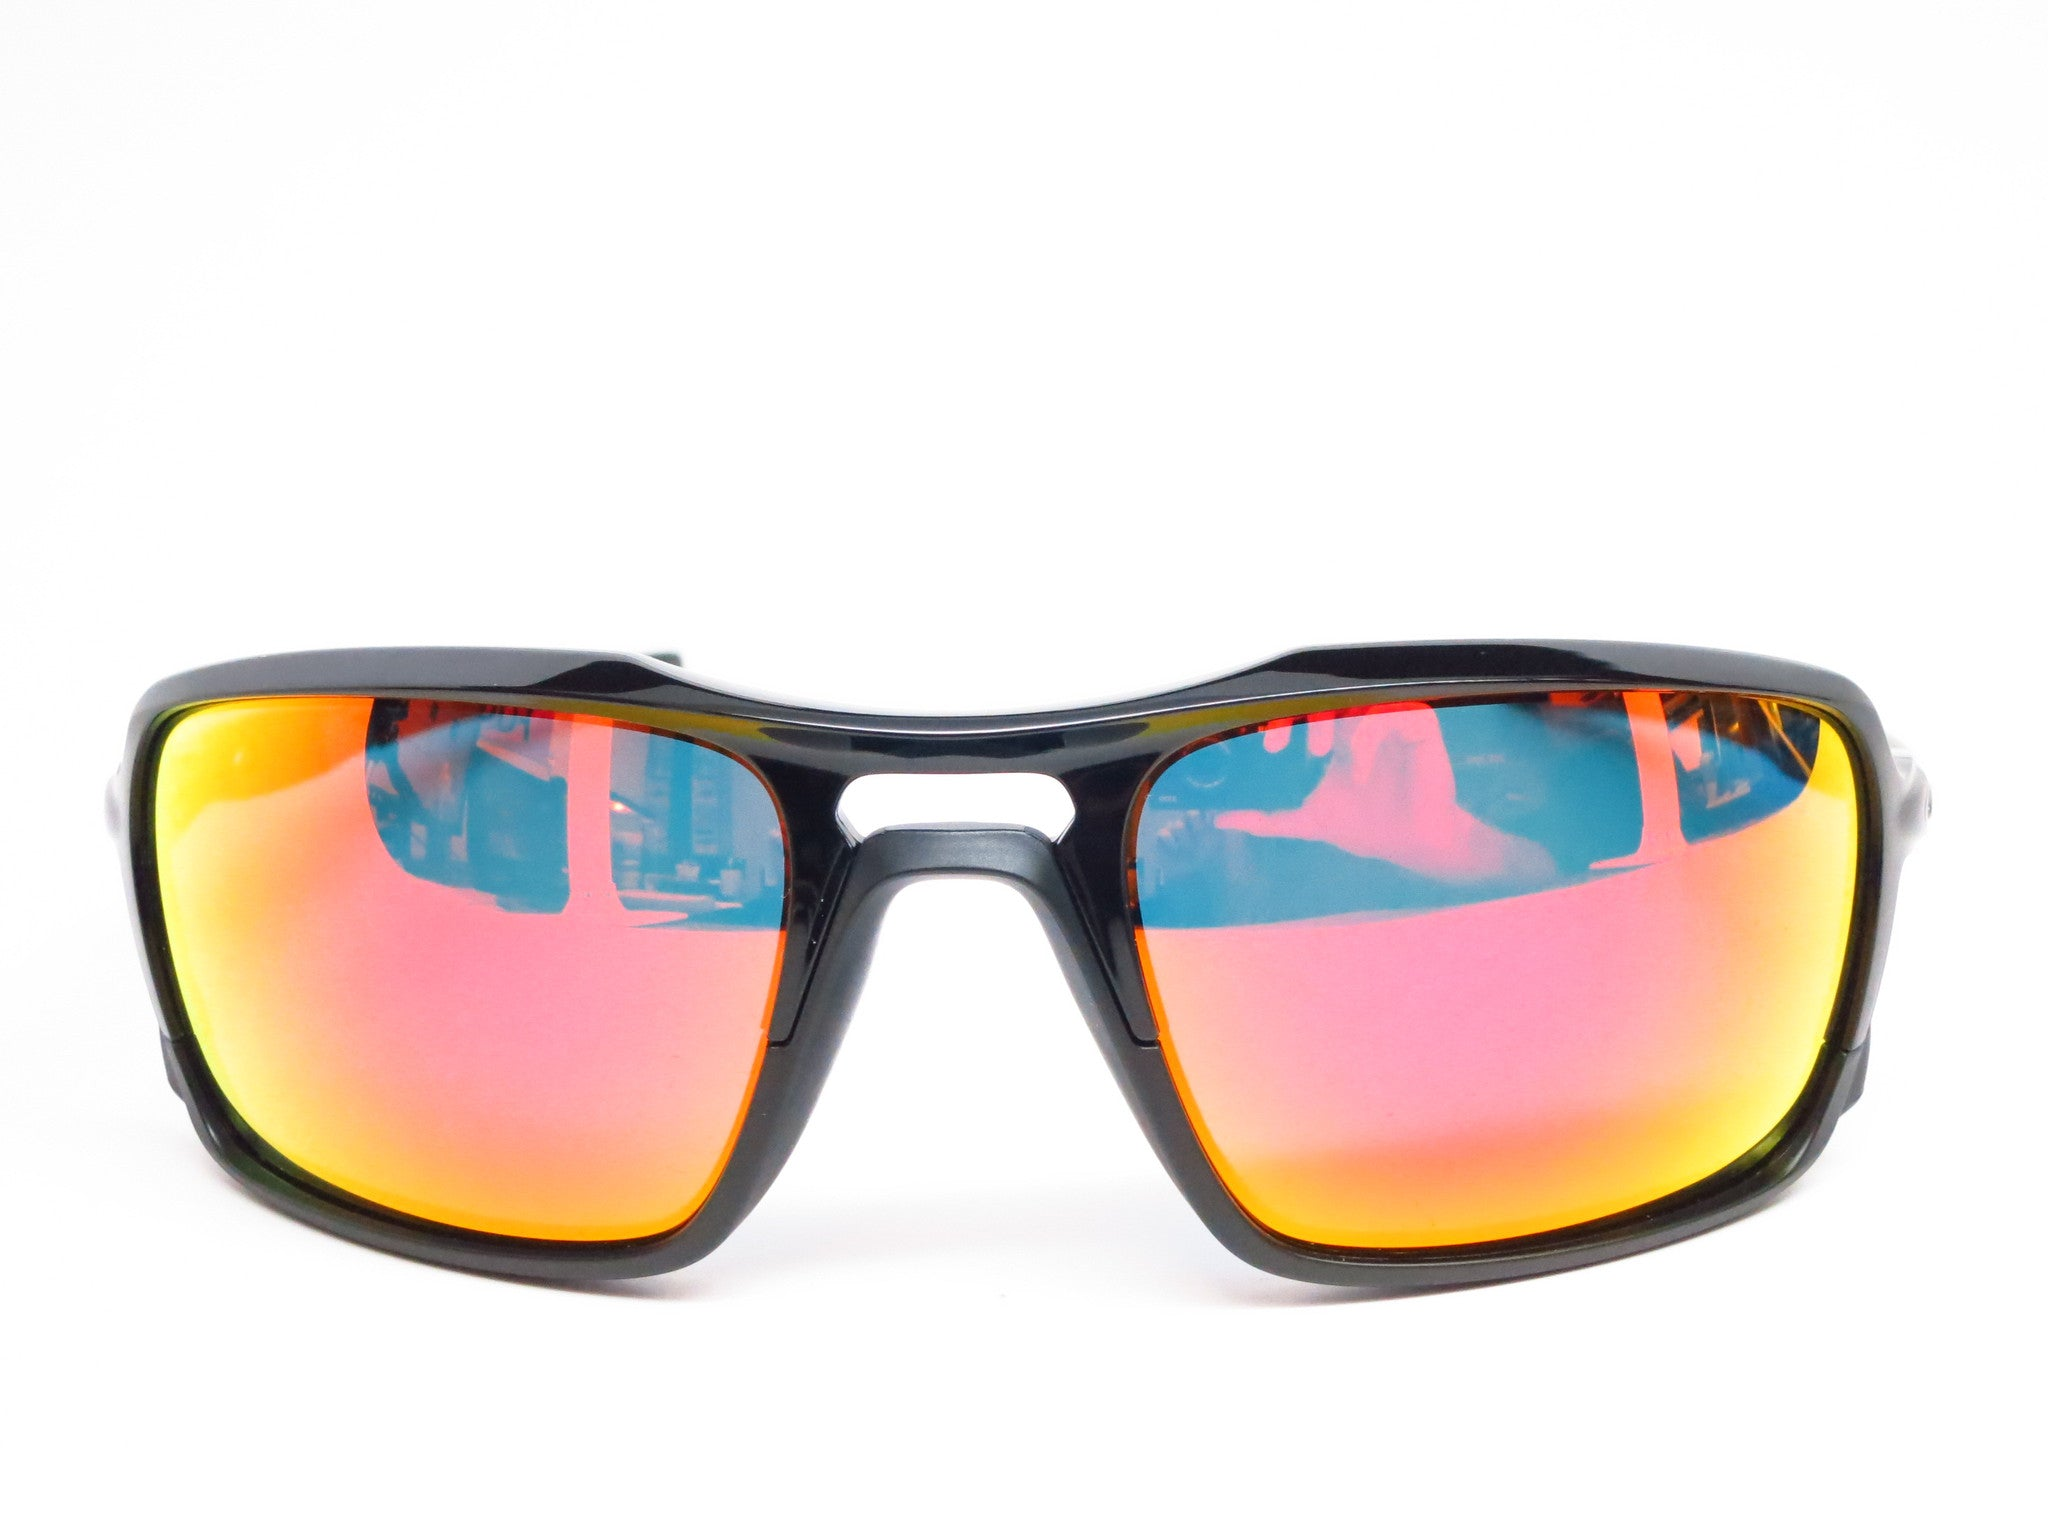 042ddf73f3 ... Oakley Triggerman OO9266-03 Polished Black Sunglasses - Eye Heart  Shades - Oakley - Sunglasses ...